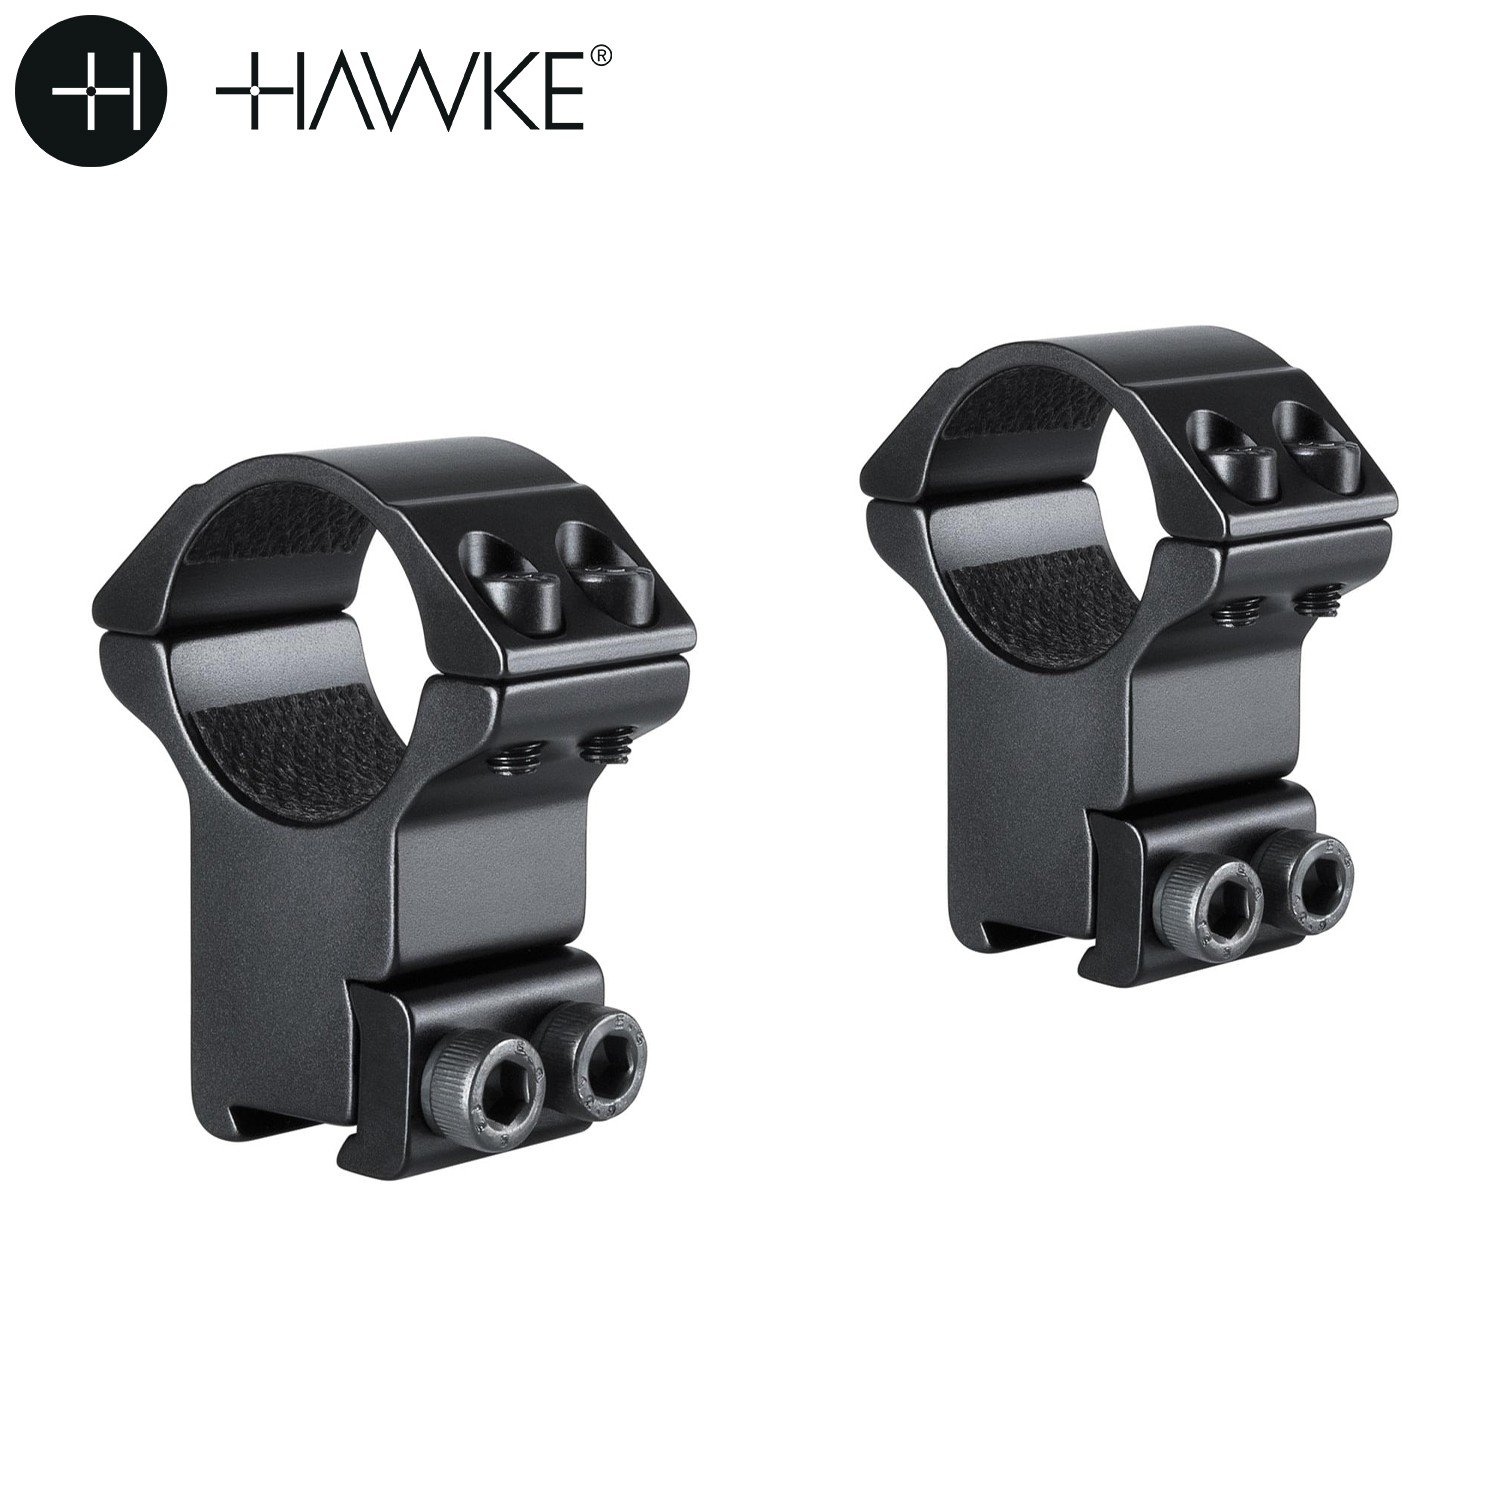 HAWKE 2PC High Mount